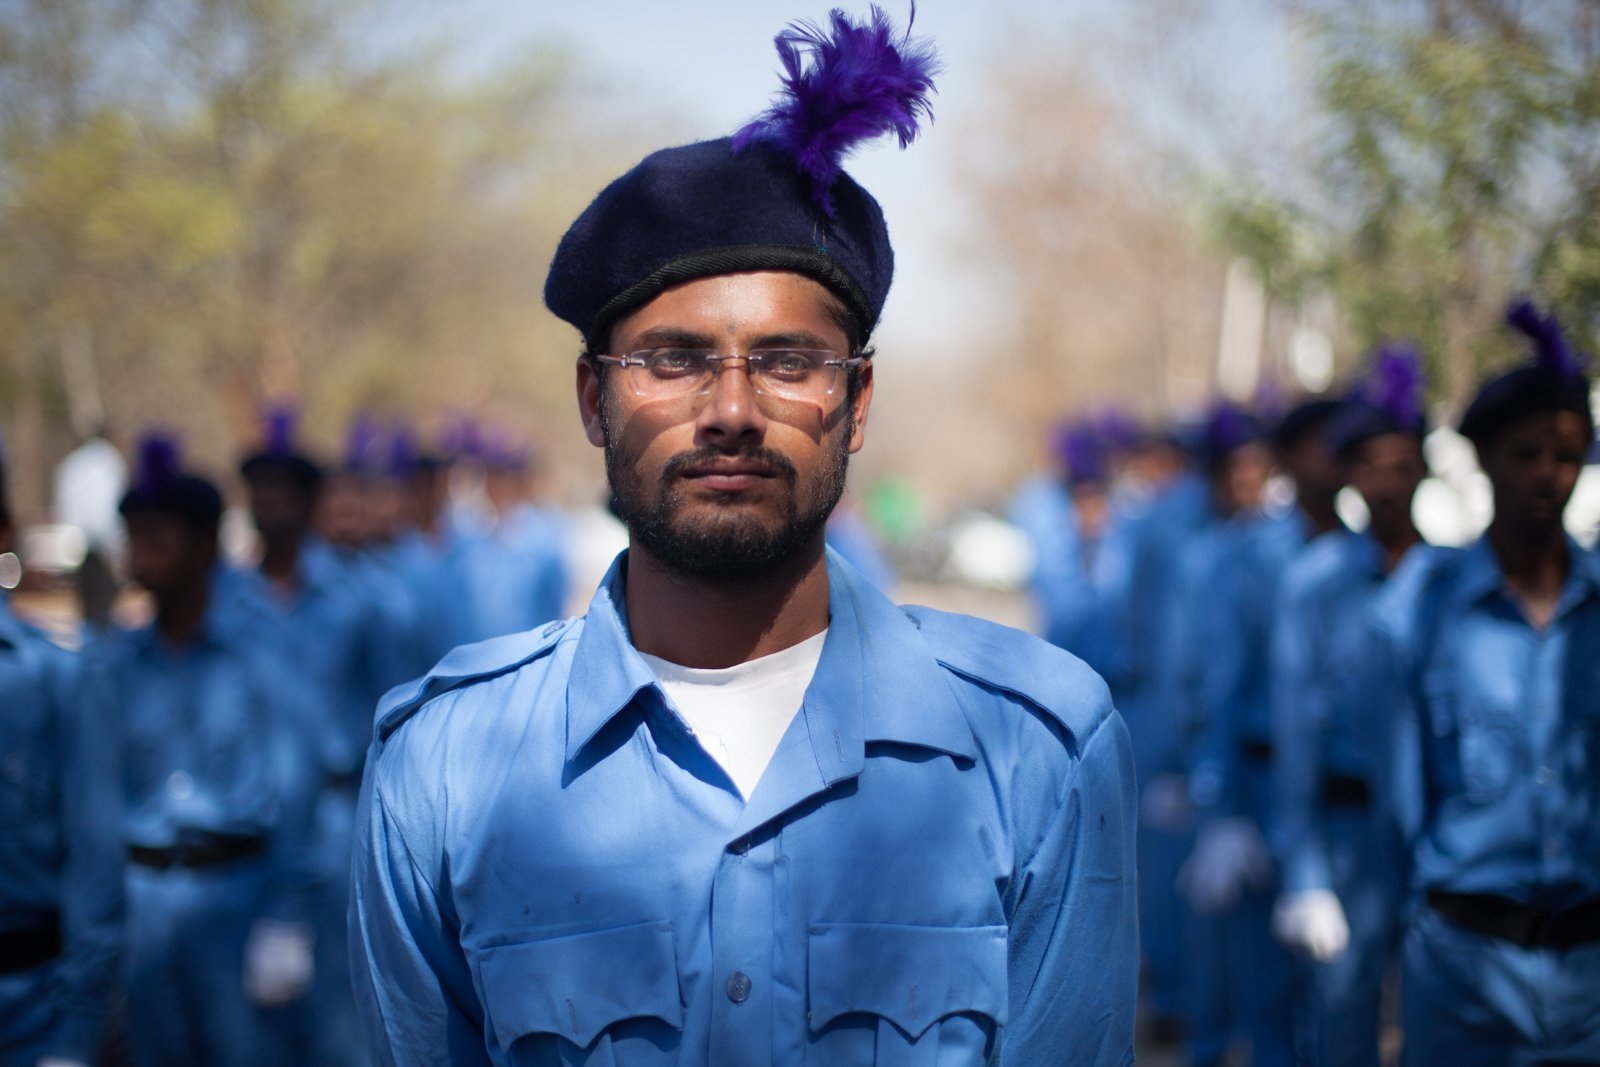 Volunteers of the Samata Sainik Dal (Army of Soldiers for Equality), a social organization founded by Dr. BR Ambedkar with an aim to establish equality among Indians by annihilating caste, pay their respects to Rohith Vemula on what would have been his 27th birthday on January 30, 2016 at the protest site.